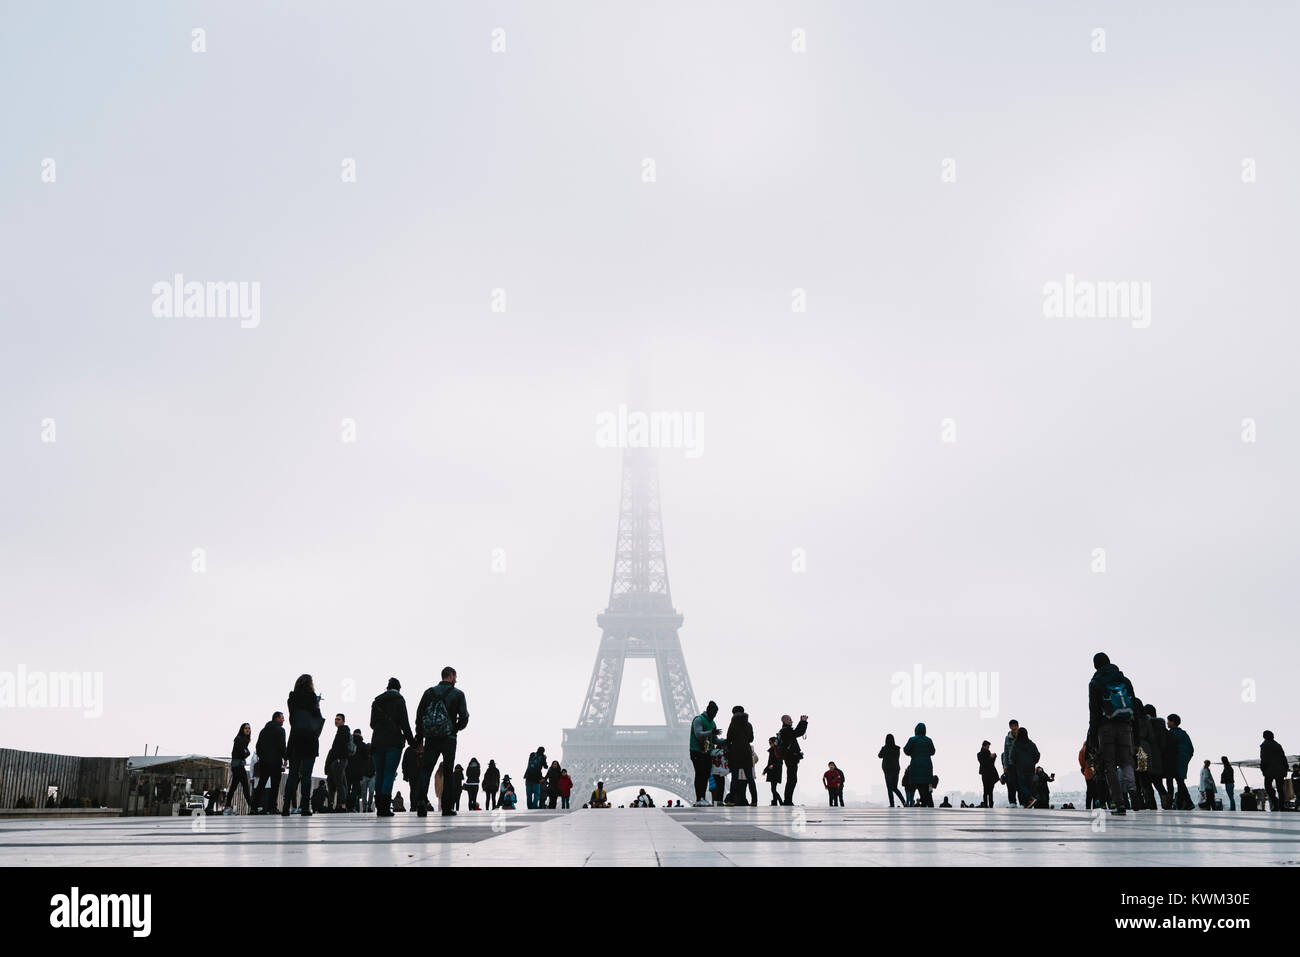 Low angle View of Eiffel tower against clear sky with tourists in foreground during foggy weather - Stock Image